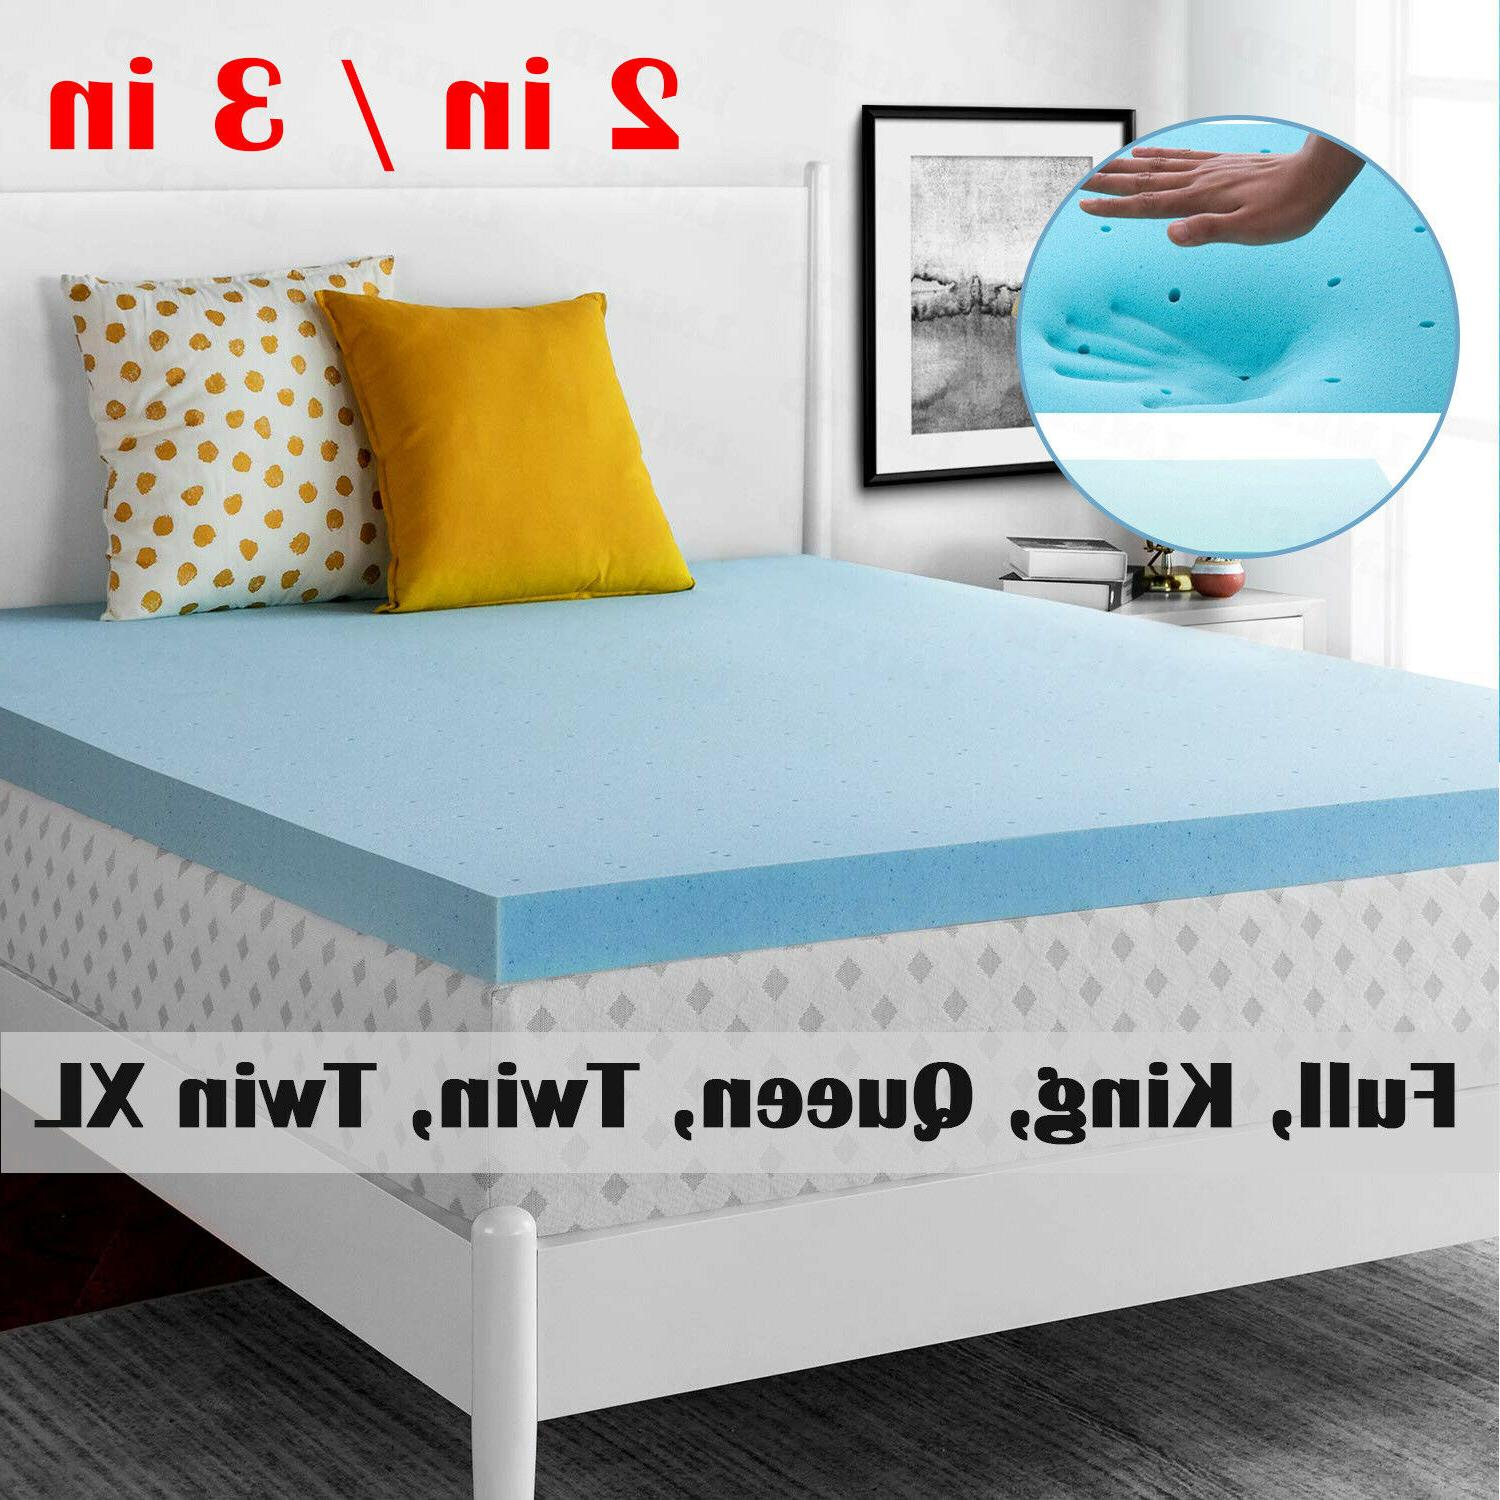 2 3 inch memory foam mattress topper